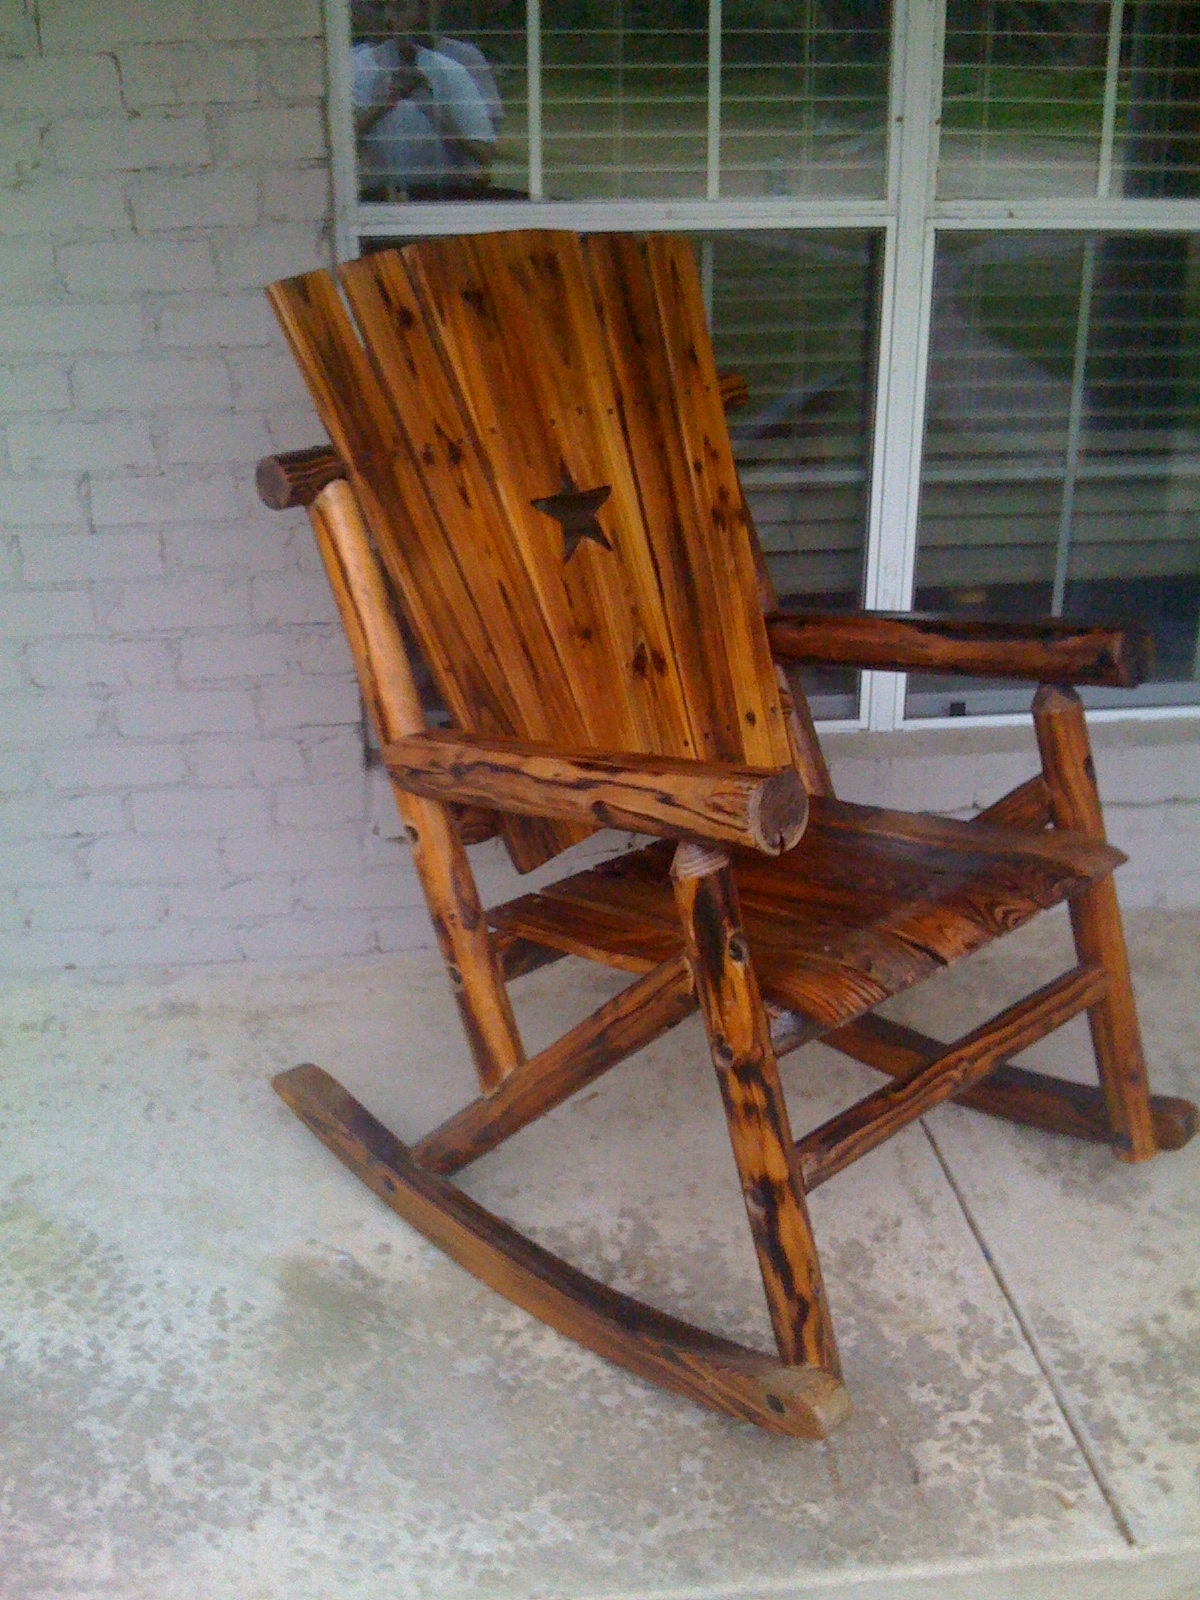 Popular Outdoor Wooden Rocking Chairs Rustic : Pleasure Outdoor Wooden In Unique Outdoor Rocking Chairs (View 11 of 15)